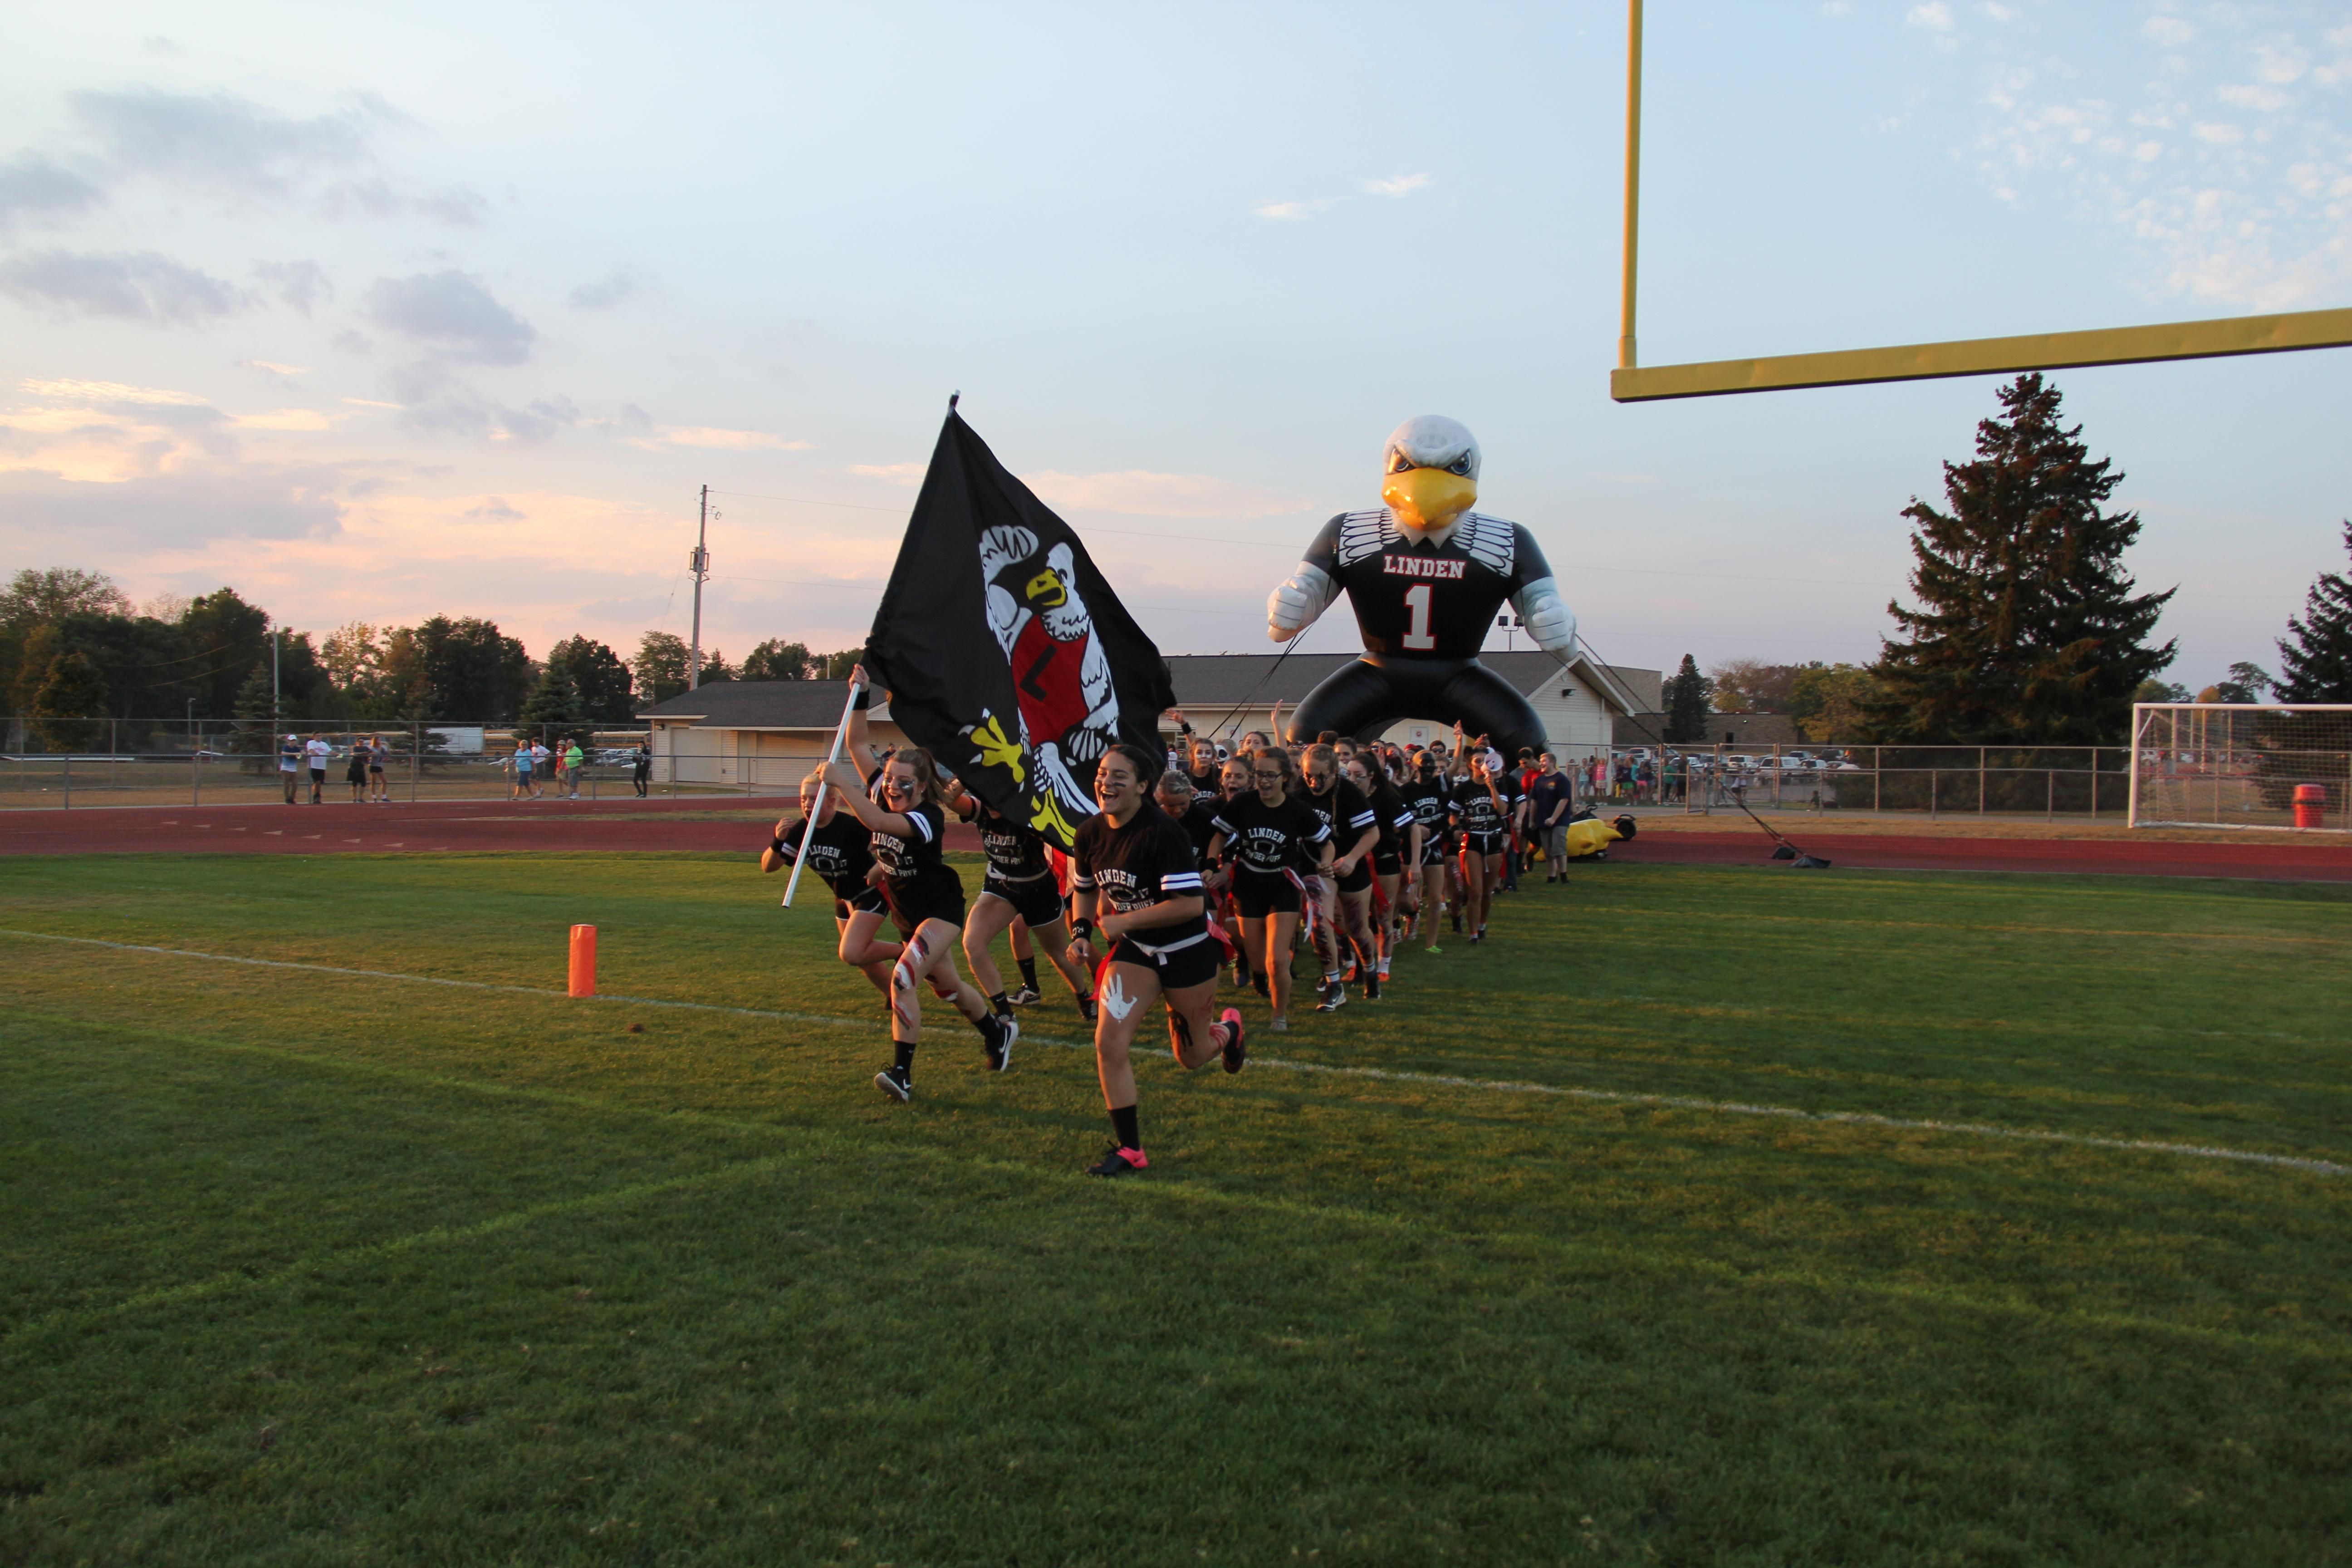 Girl powderpuff players running onto a football field carring the school flag.